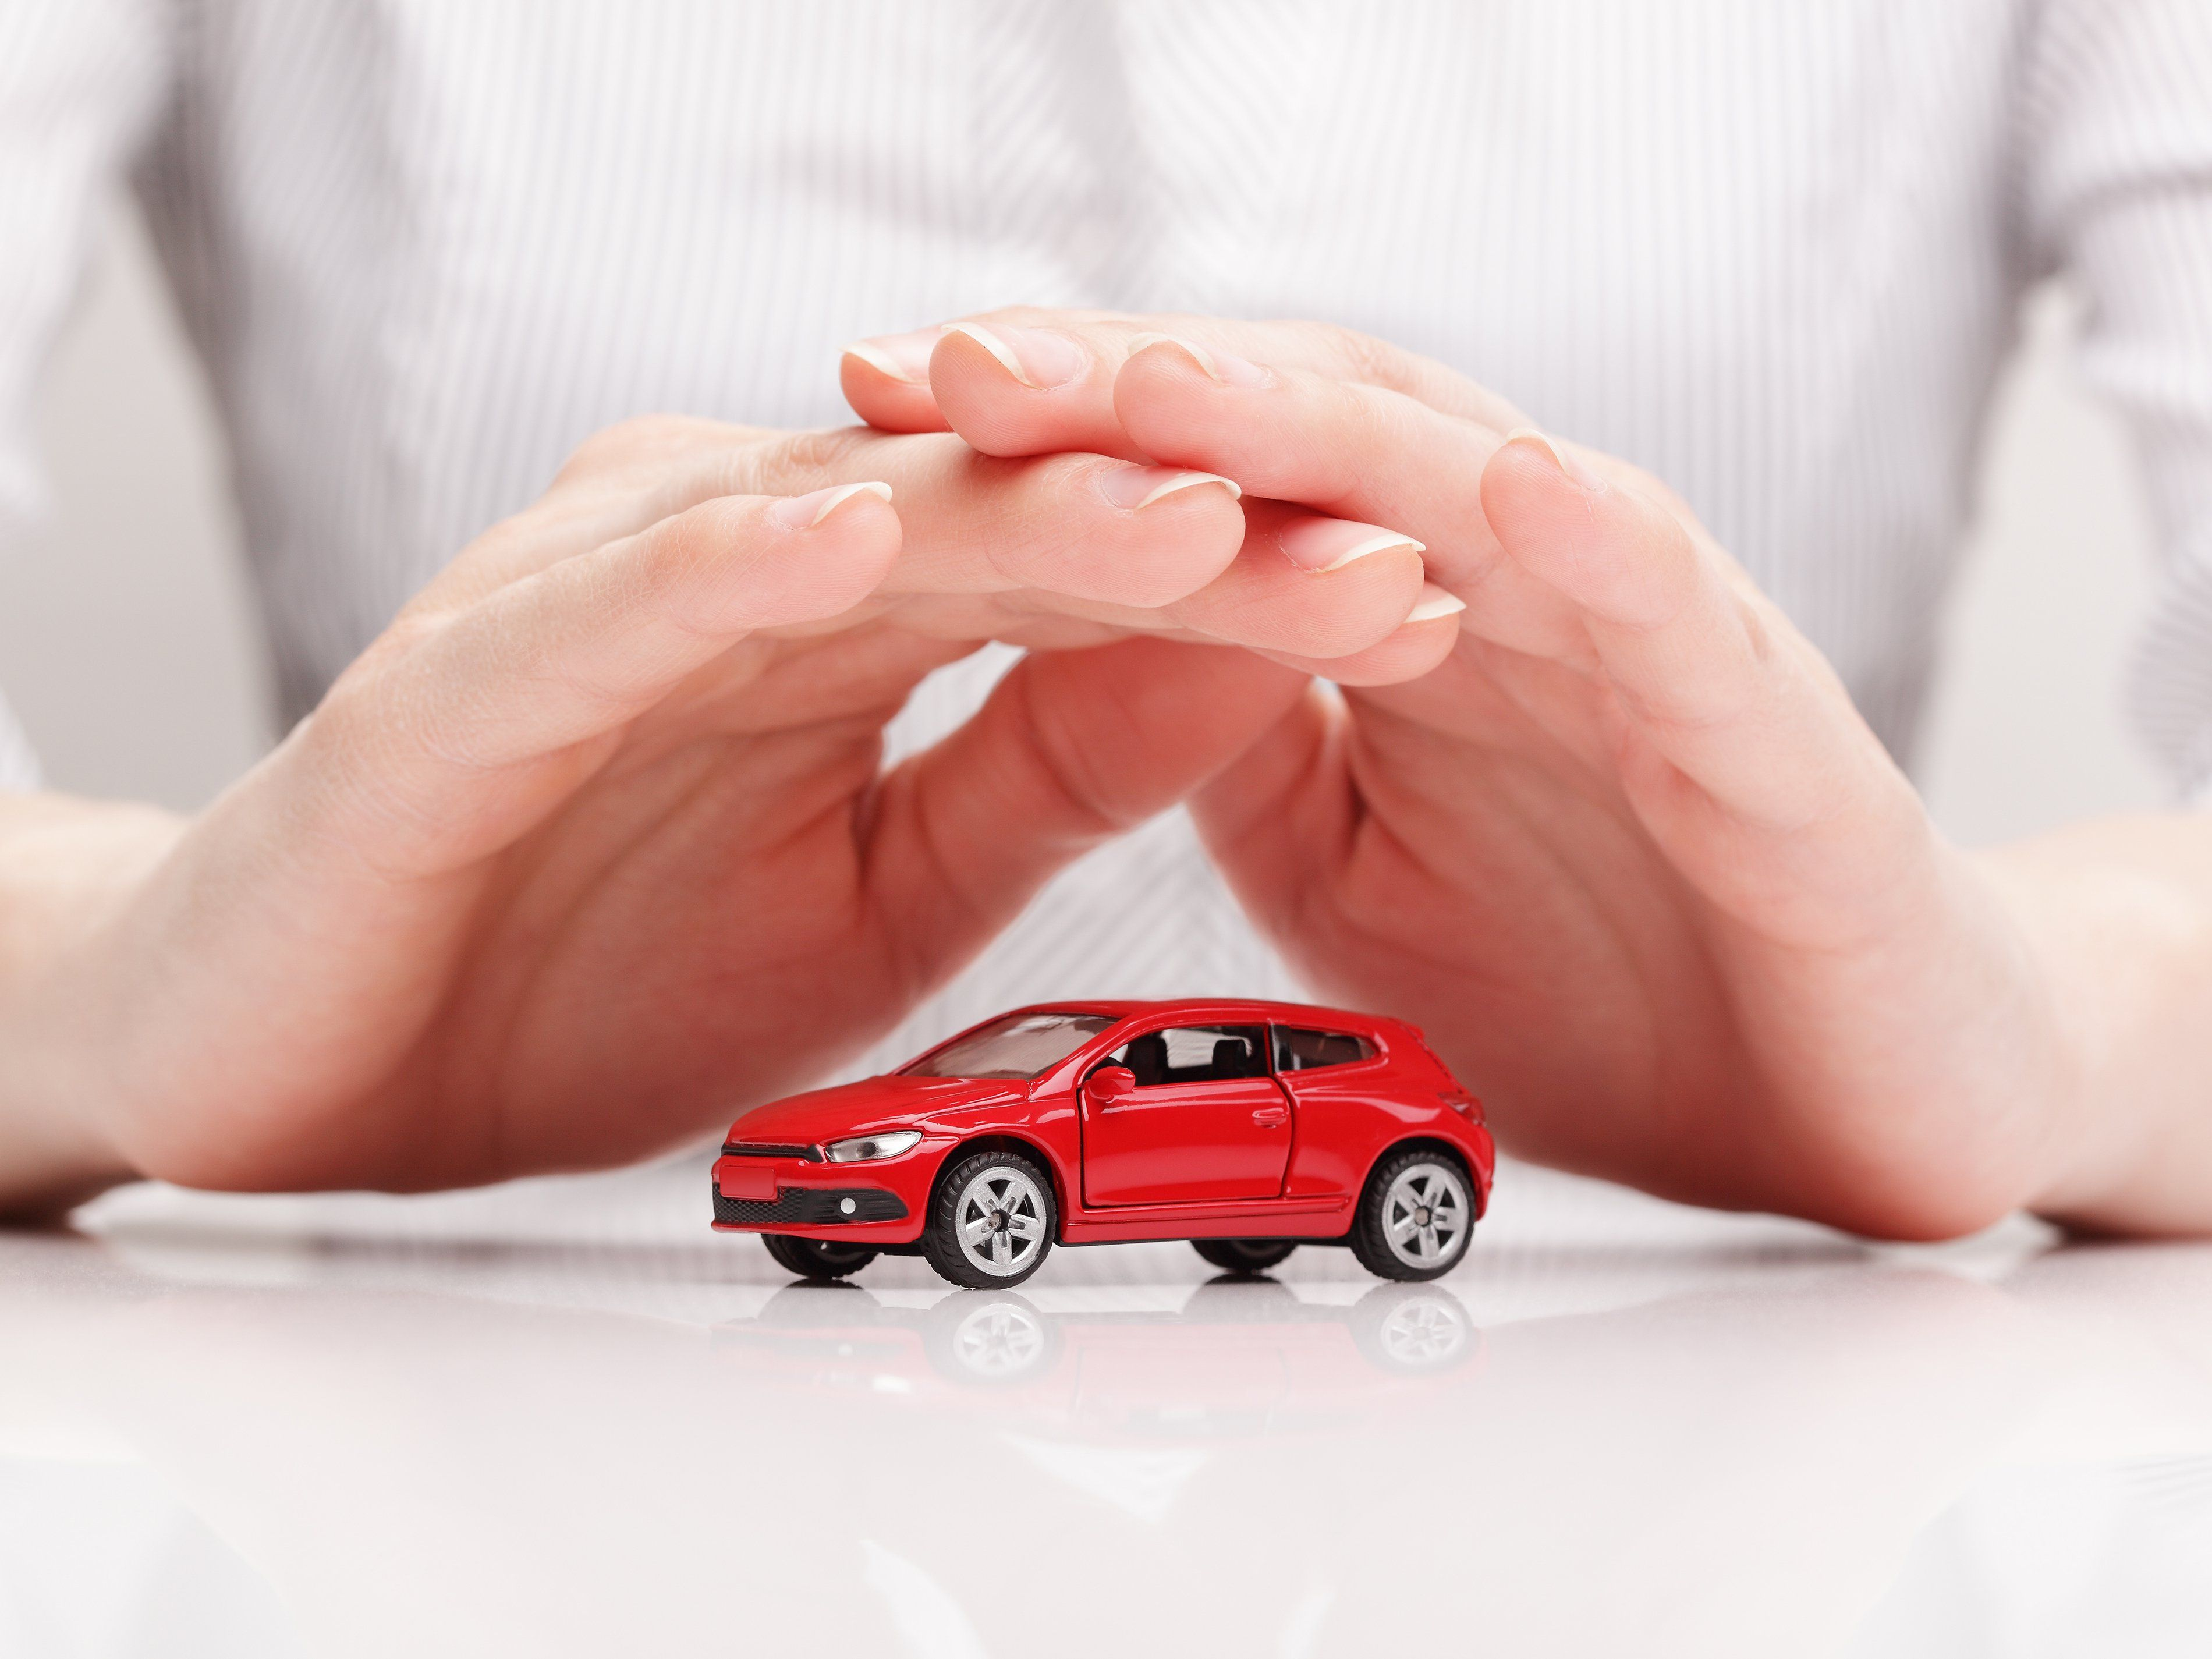 Reliable And Trustworthy Auto Insurance Near Me According To Need